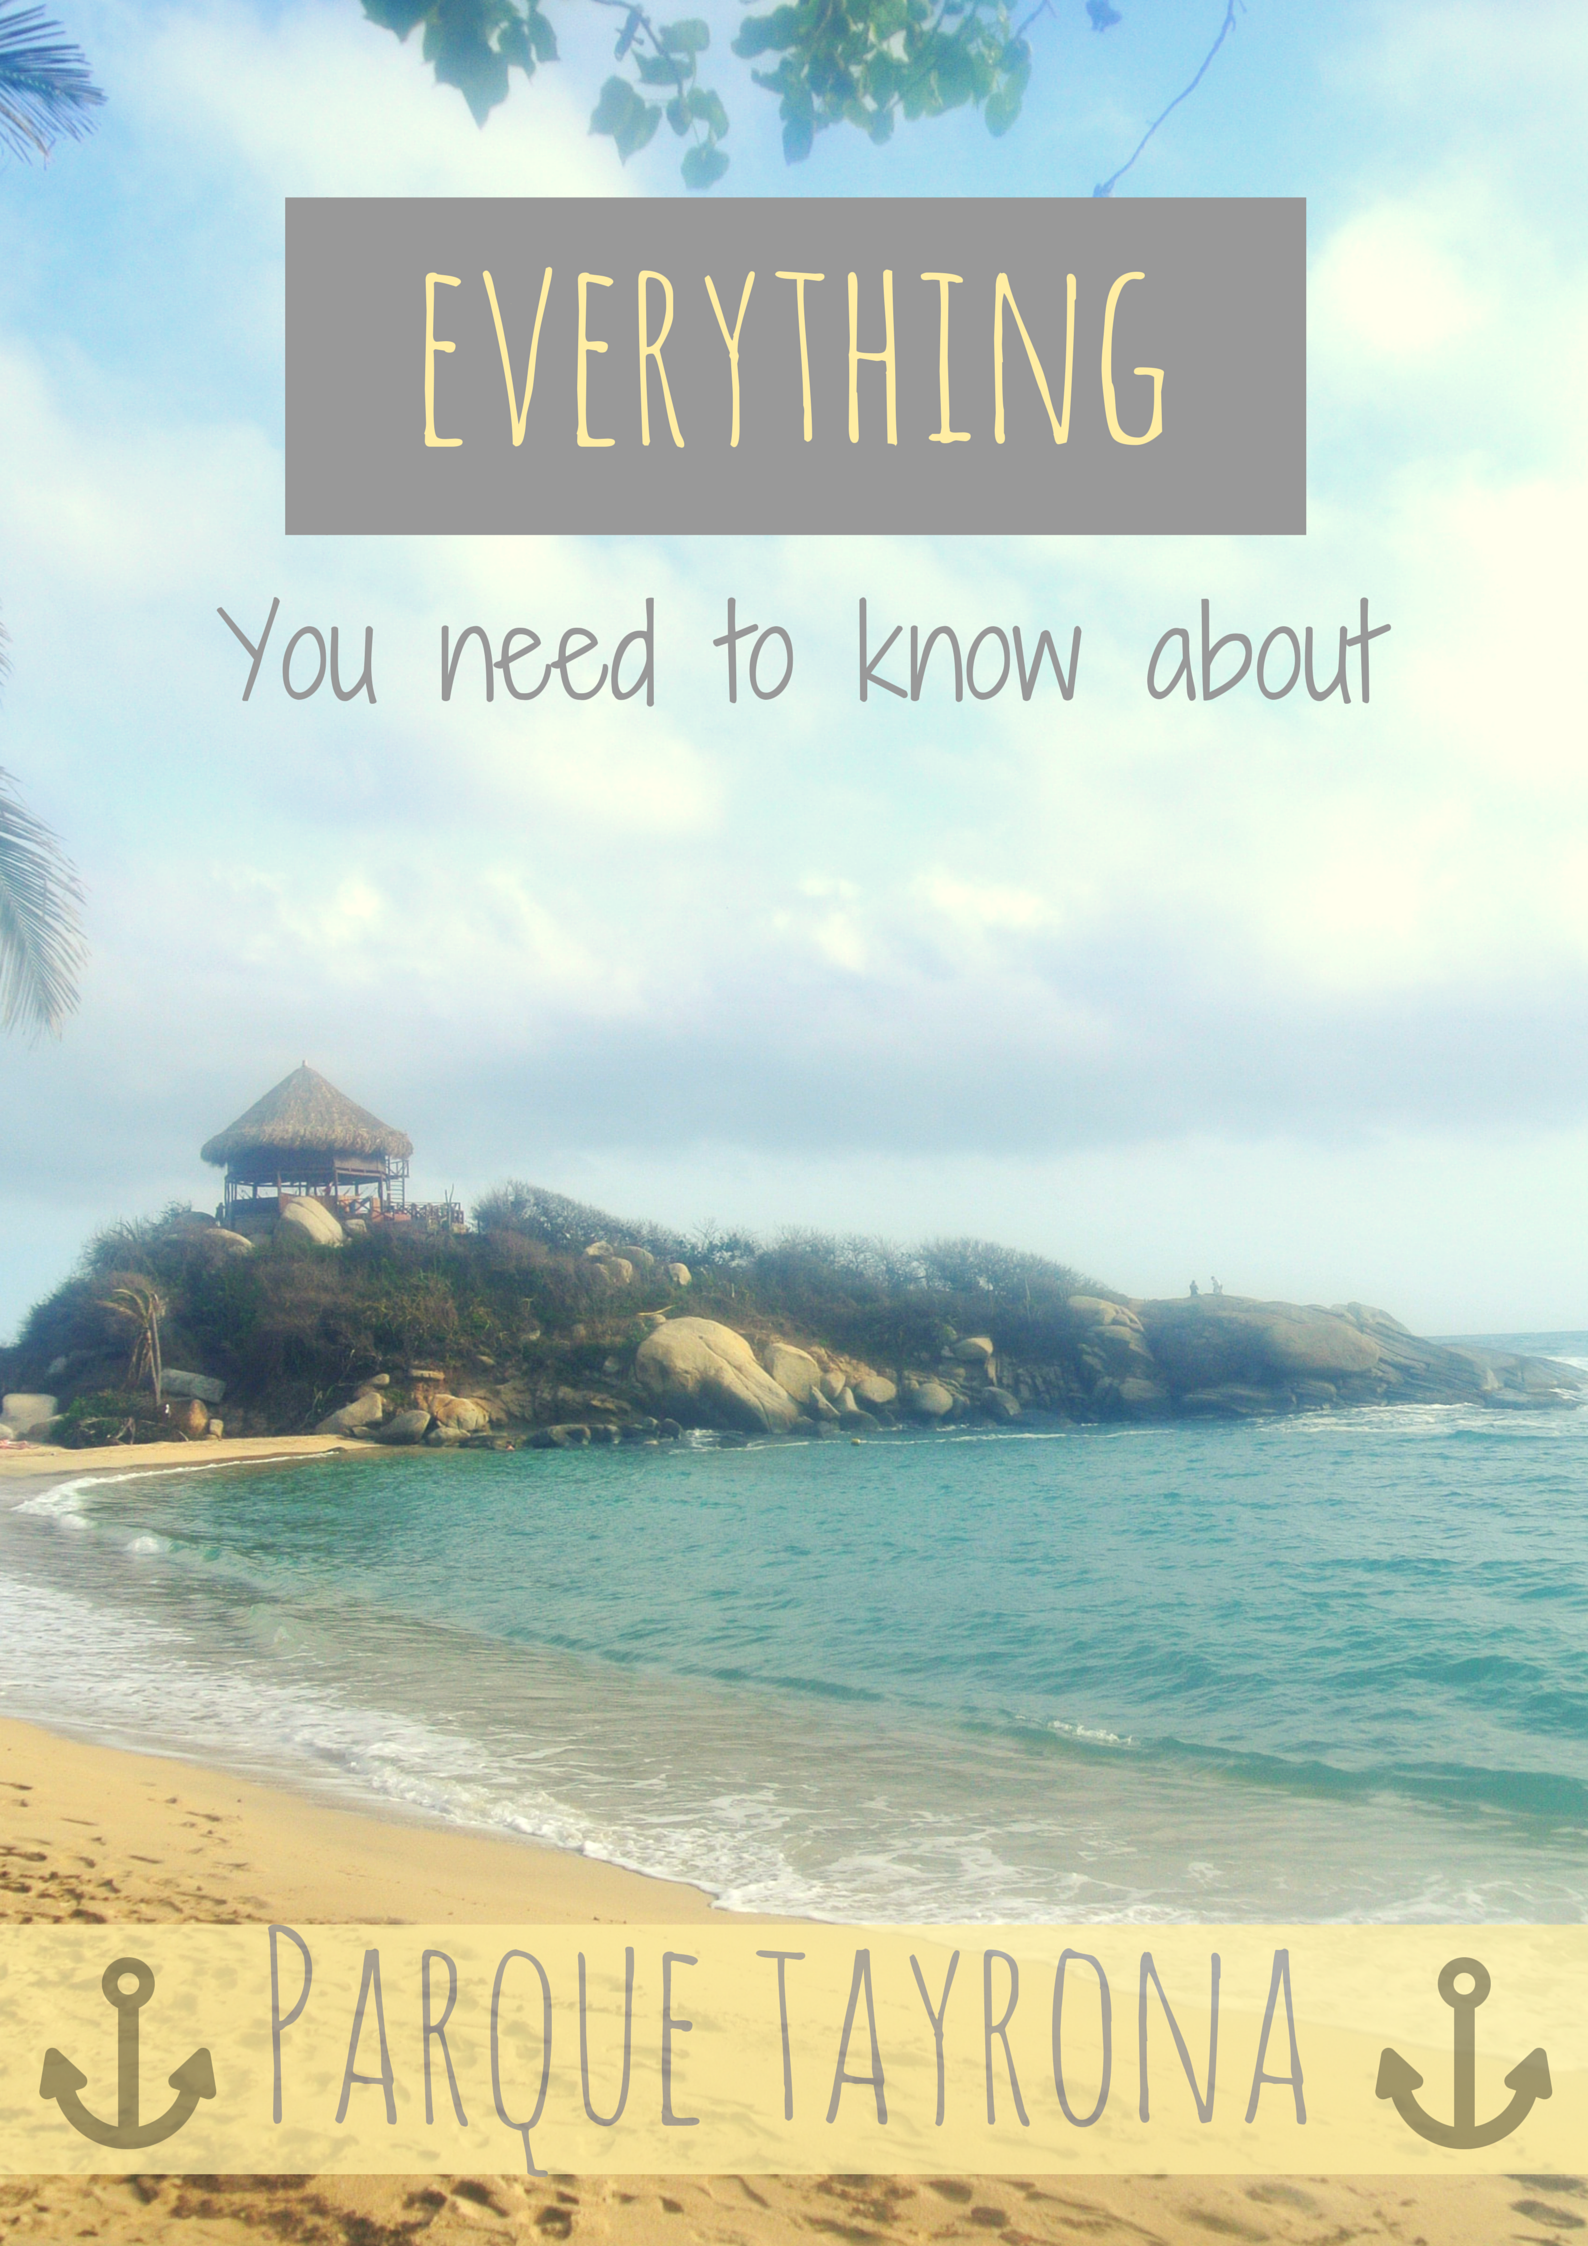 Destination Travel Guide To Parque Tayrona National Park, Magdalena, Colombia